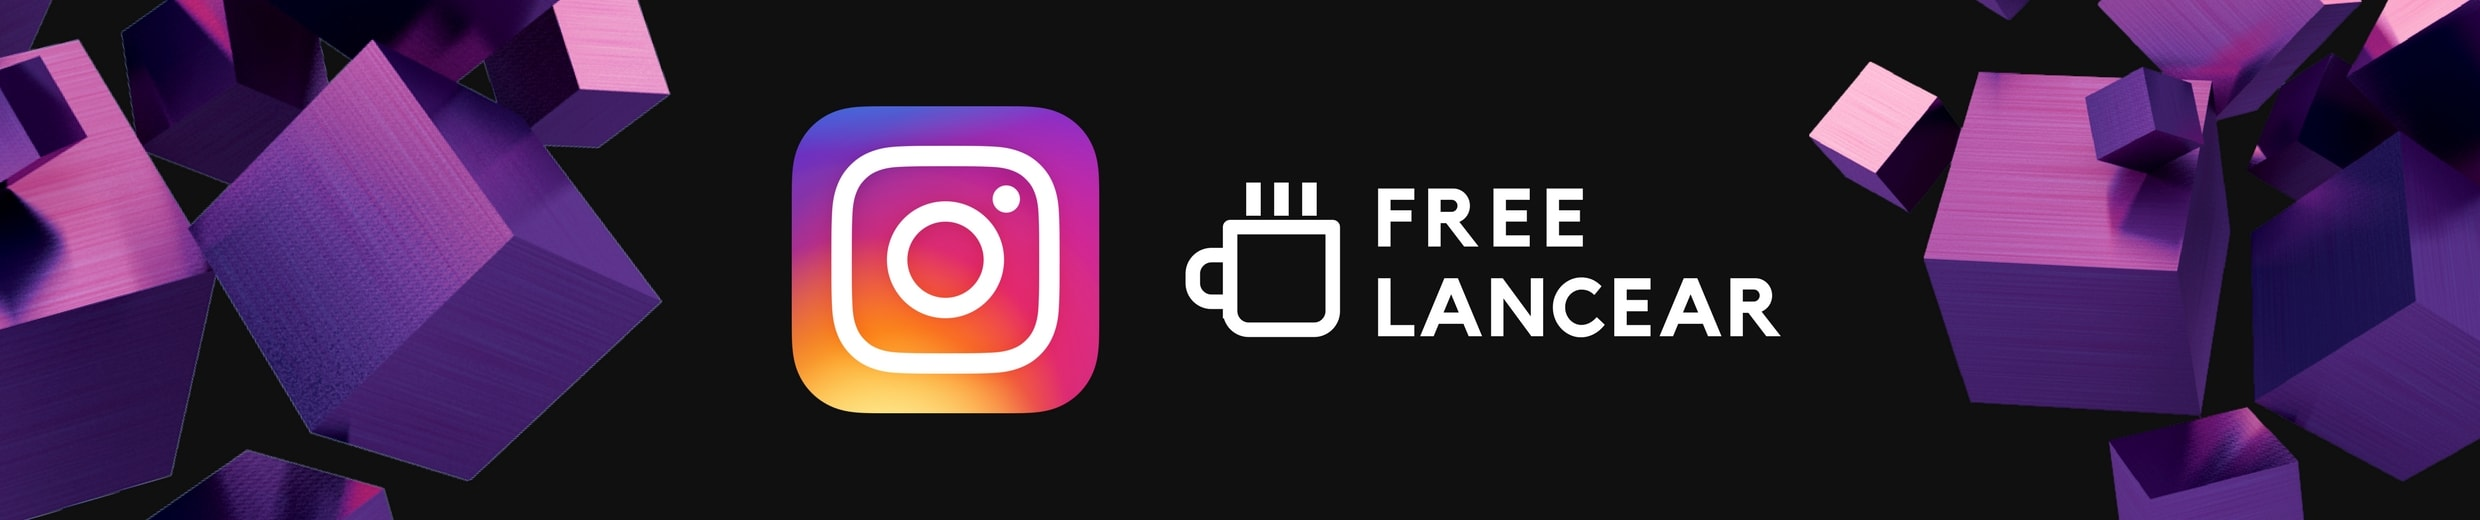 começar a ser freelancer na internet no instagram